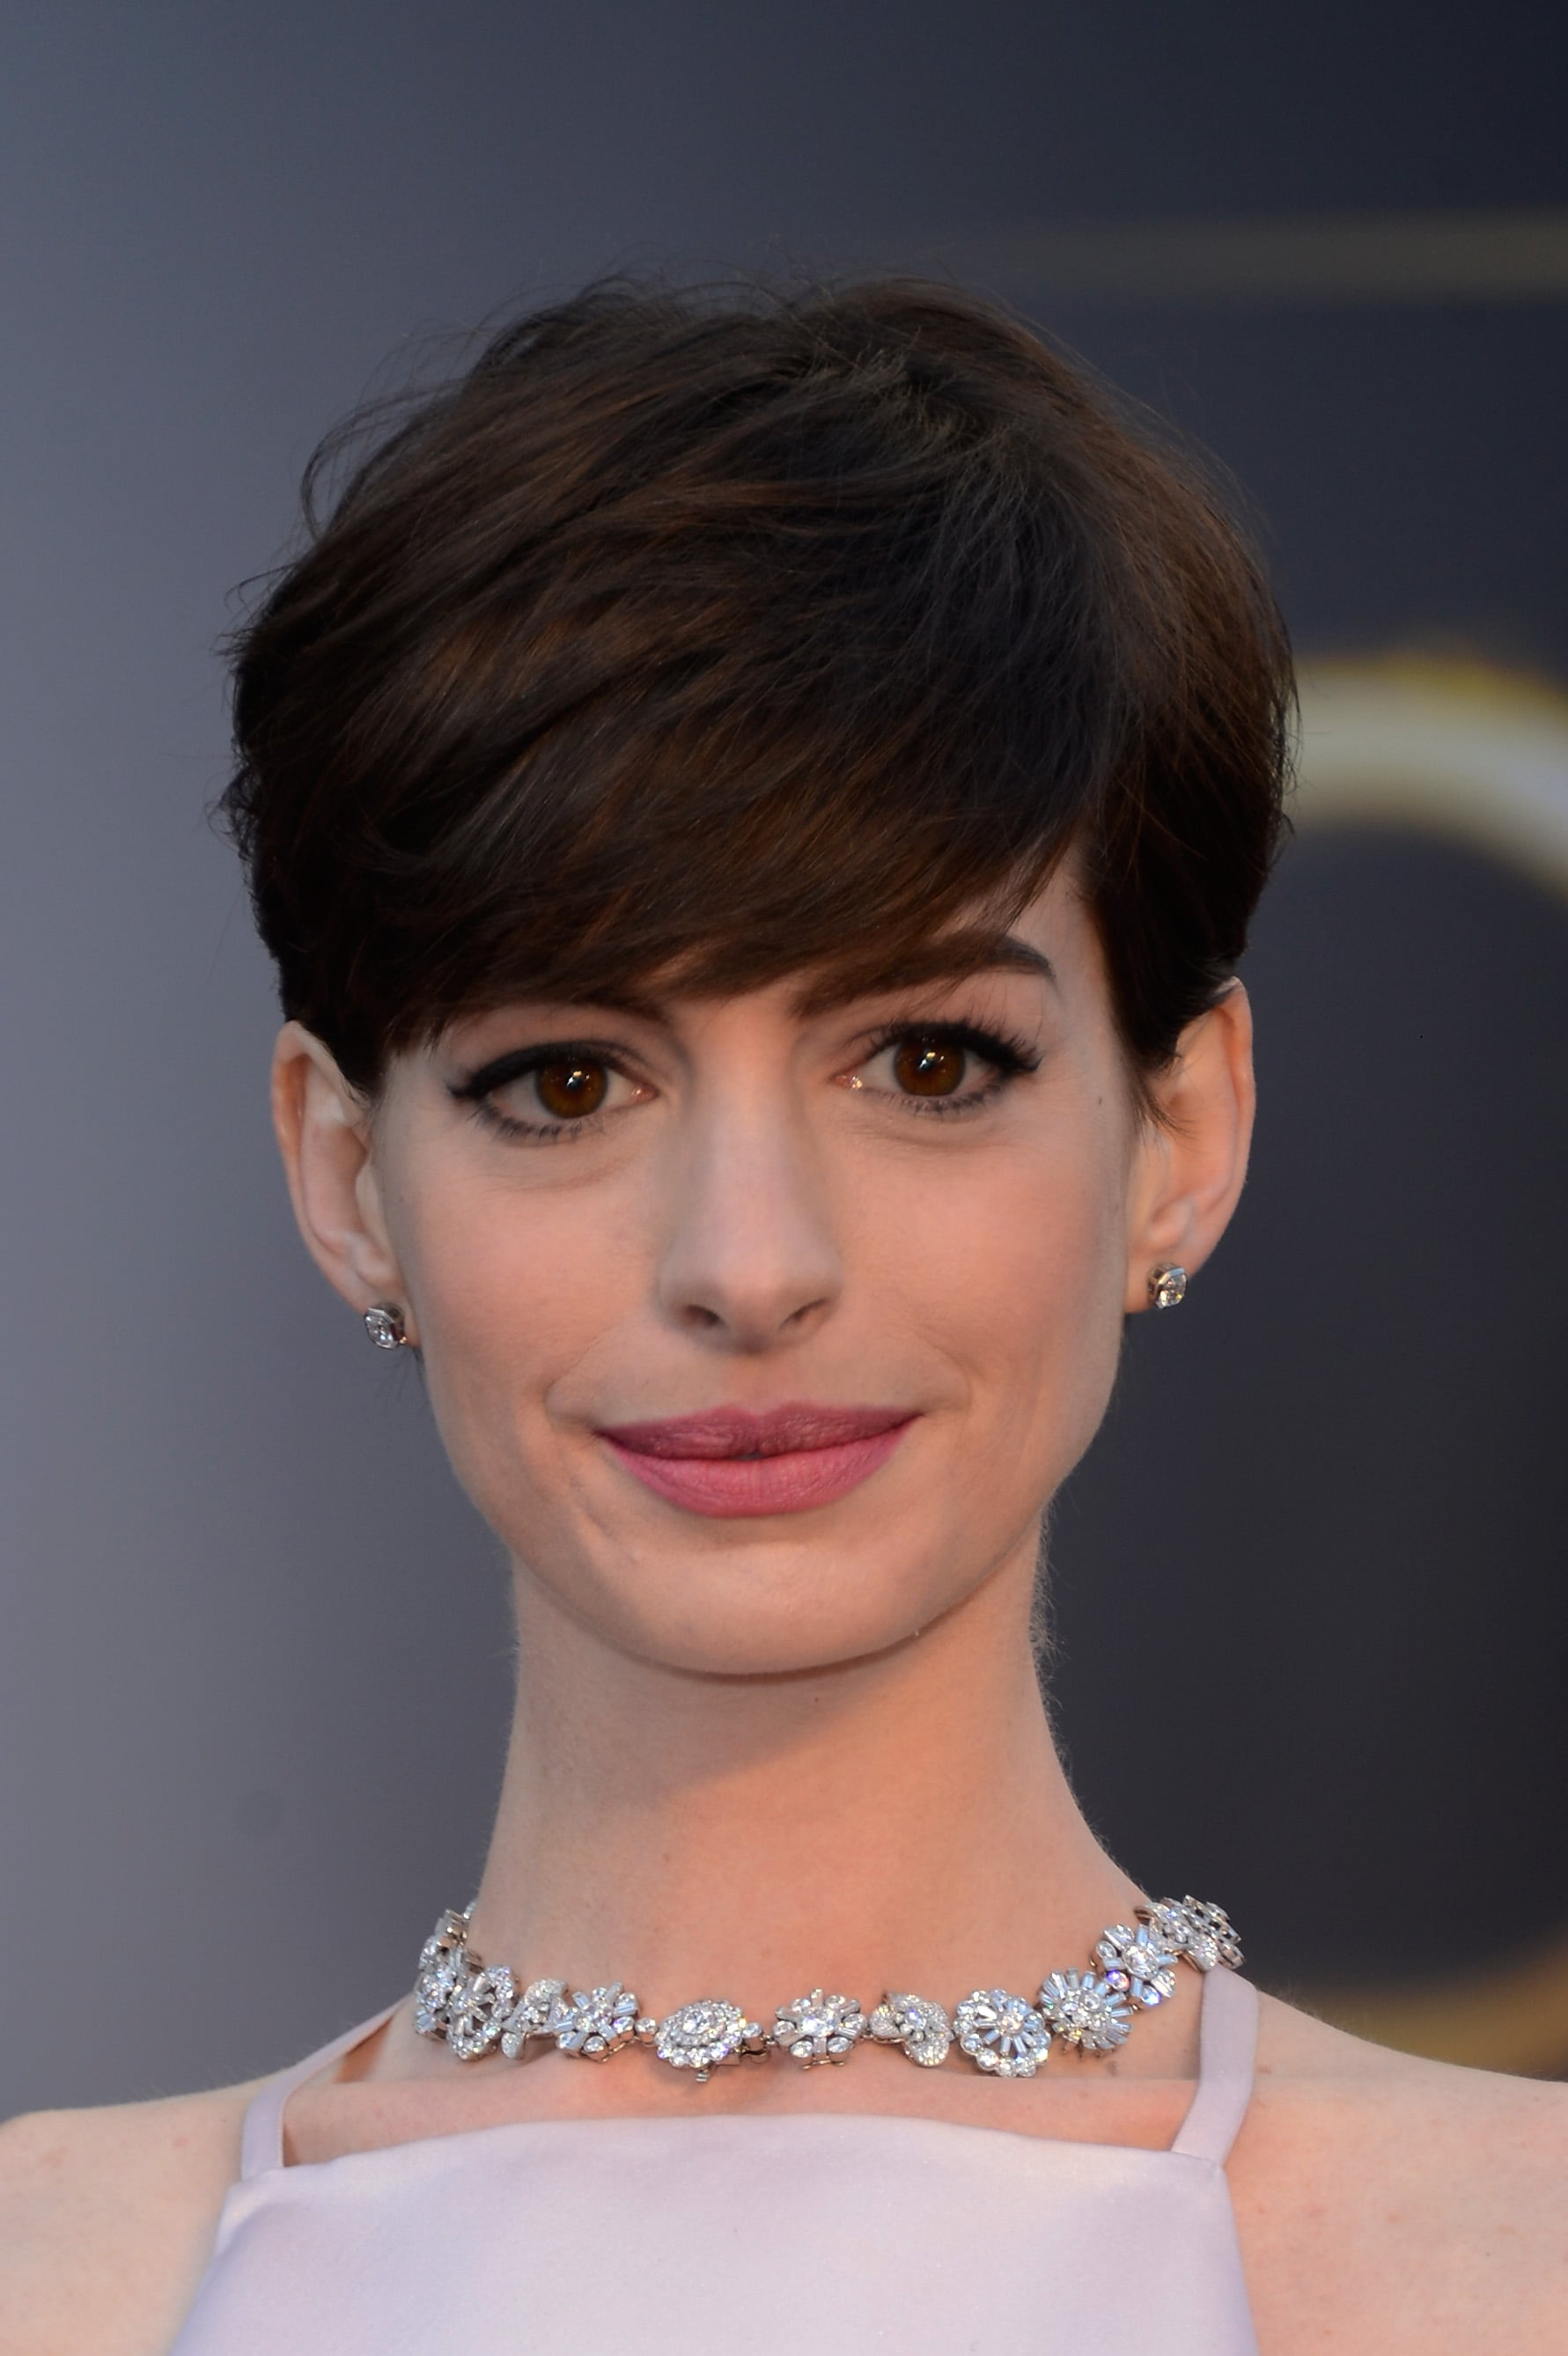 Anne Hathaway S Pixie Cut In 2013 The 22 Wildest Celebrity Hair Transformations Of The Last Decade Popsugar Beauty Photo 32